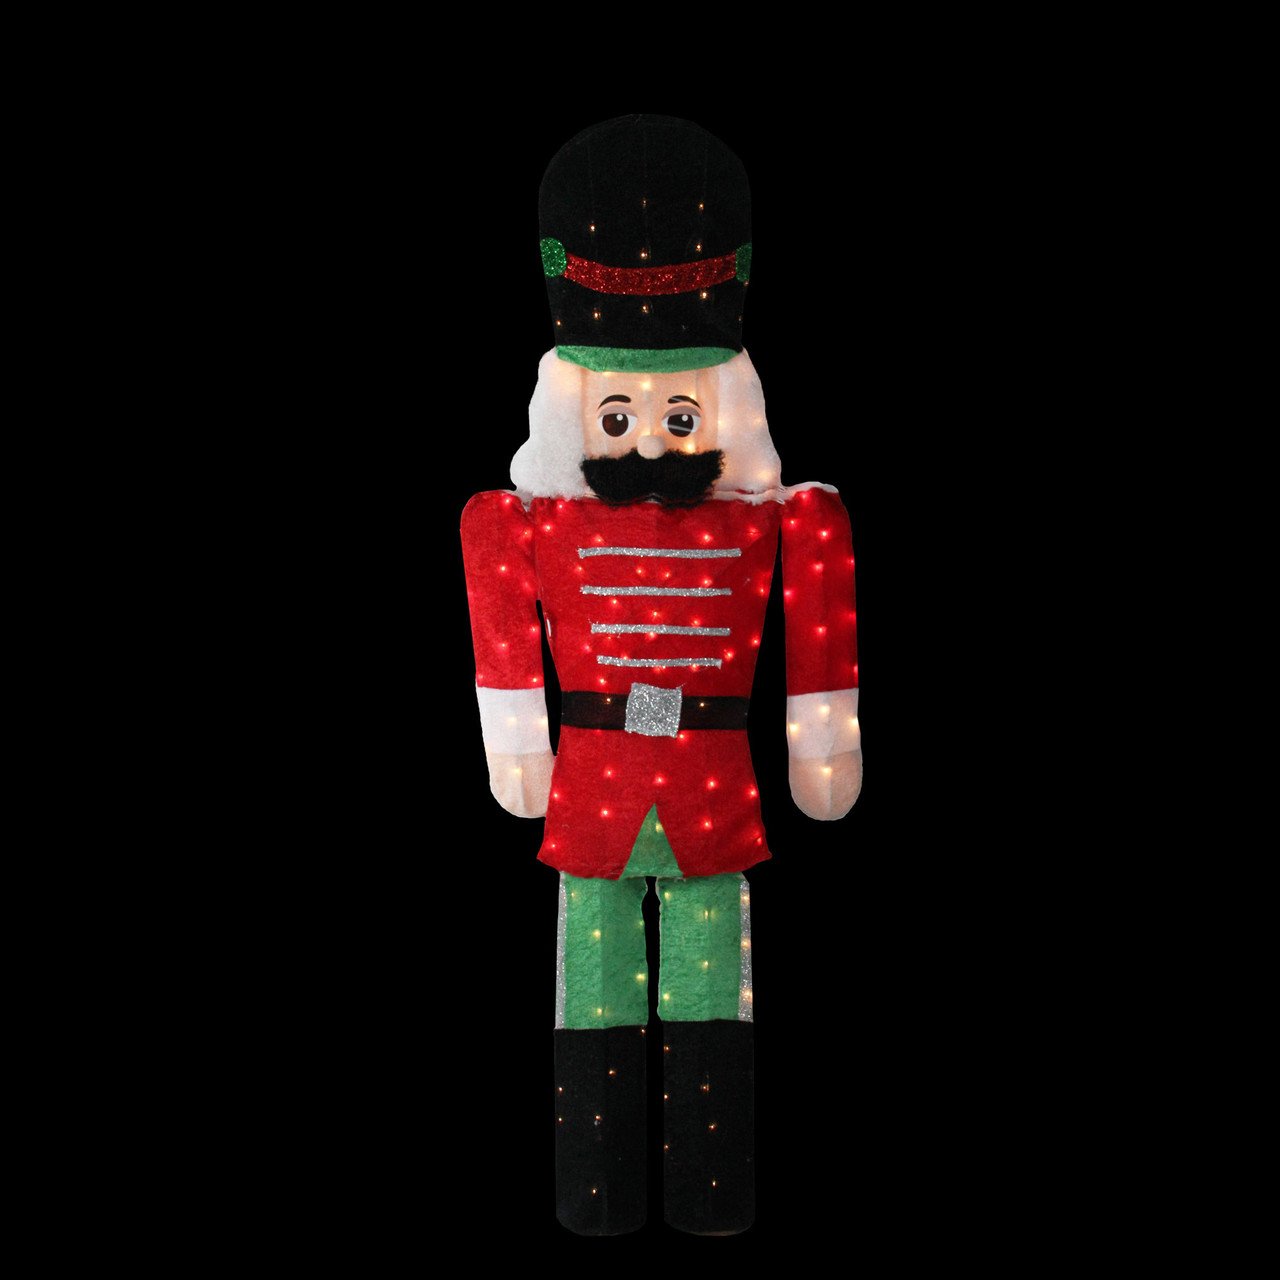 6 pre lit candy cane lane 2 d toy soldier christmas outdoor decoration 32606673 - Toy Soldier Christmas Decoration